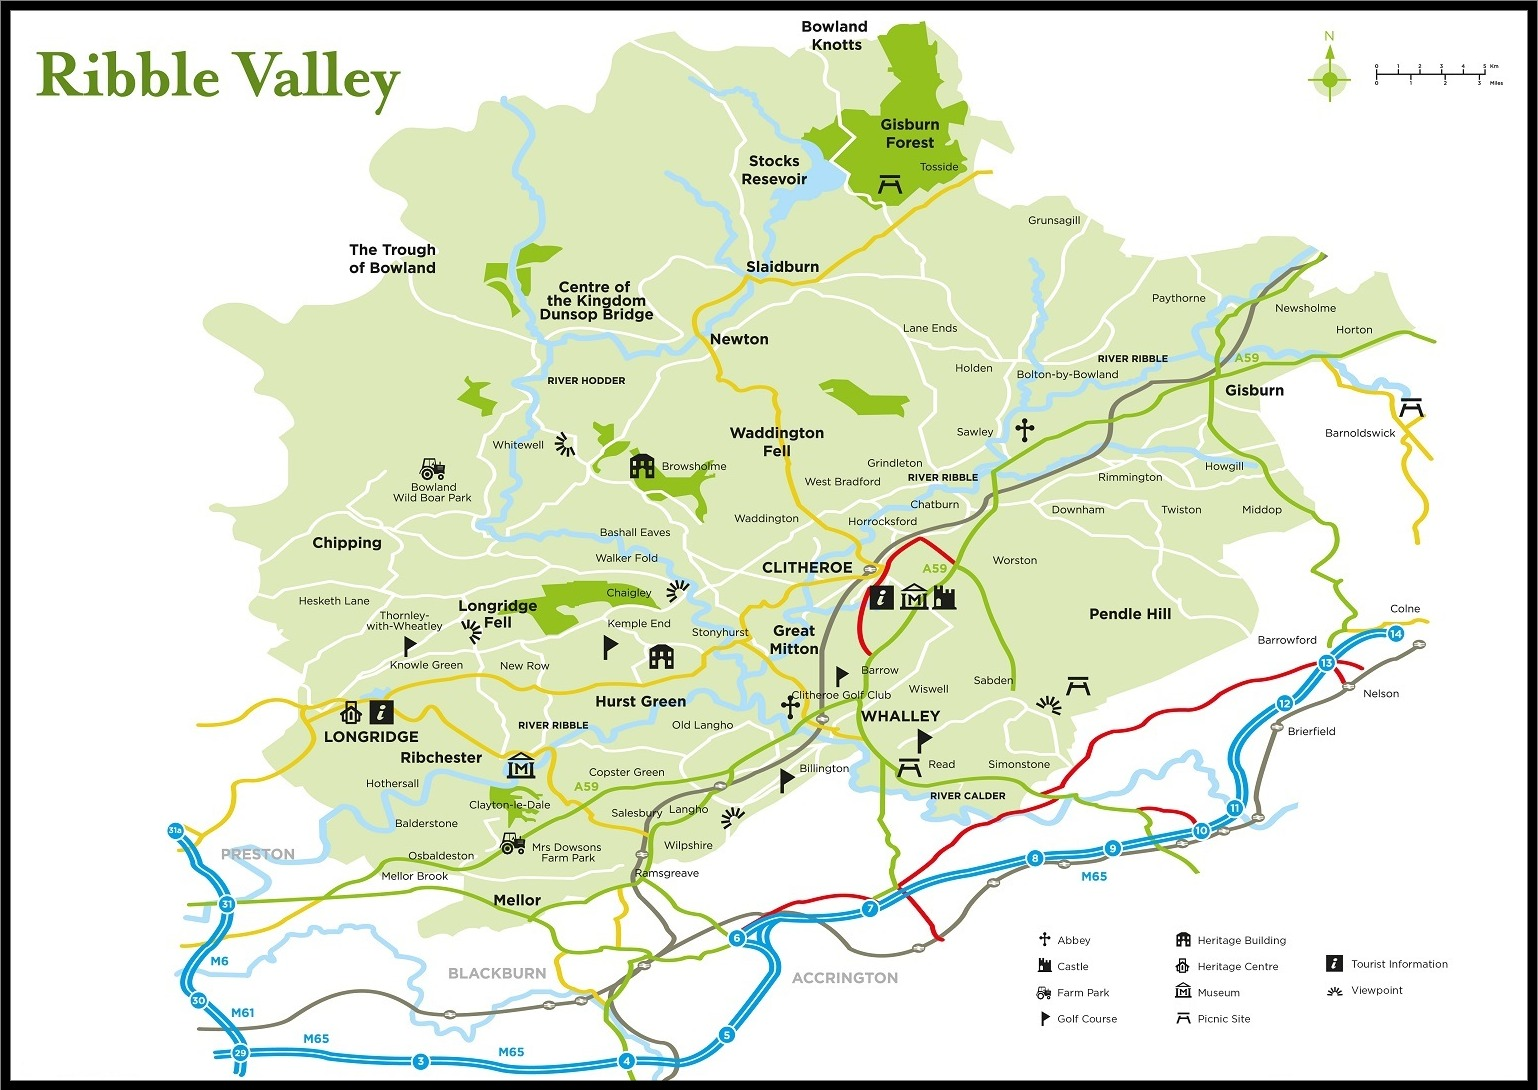 Map of Ribble Valley